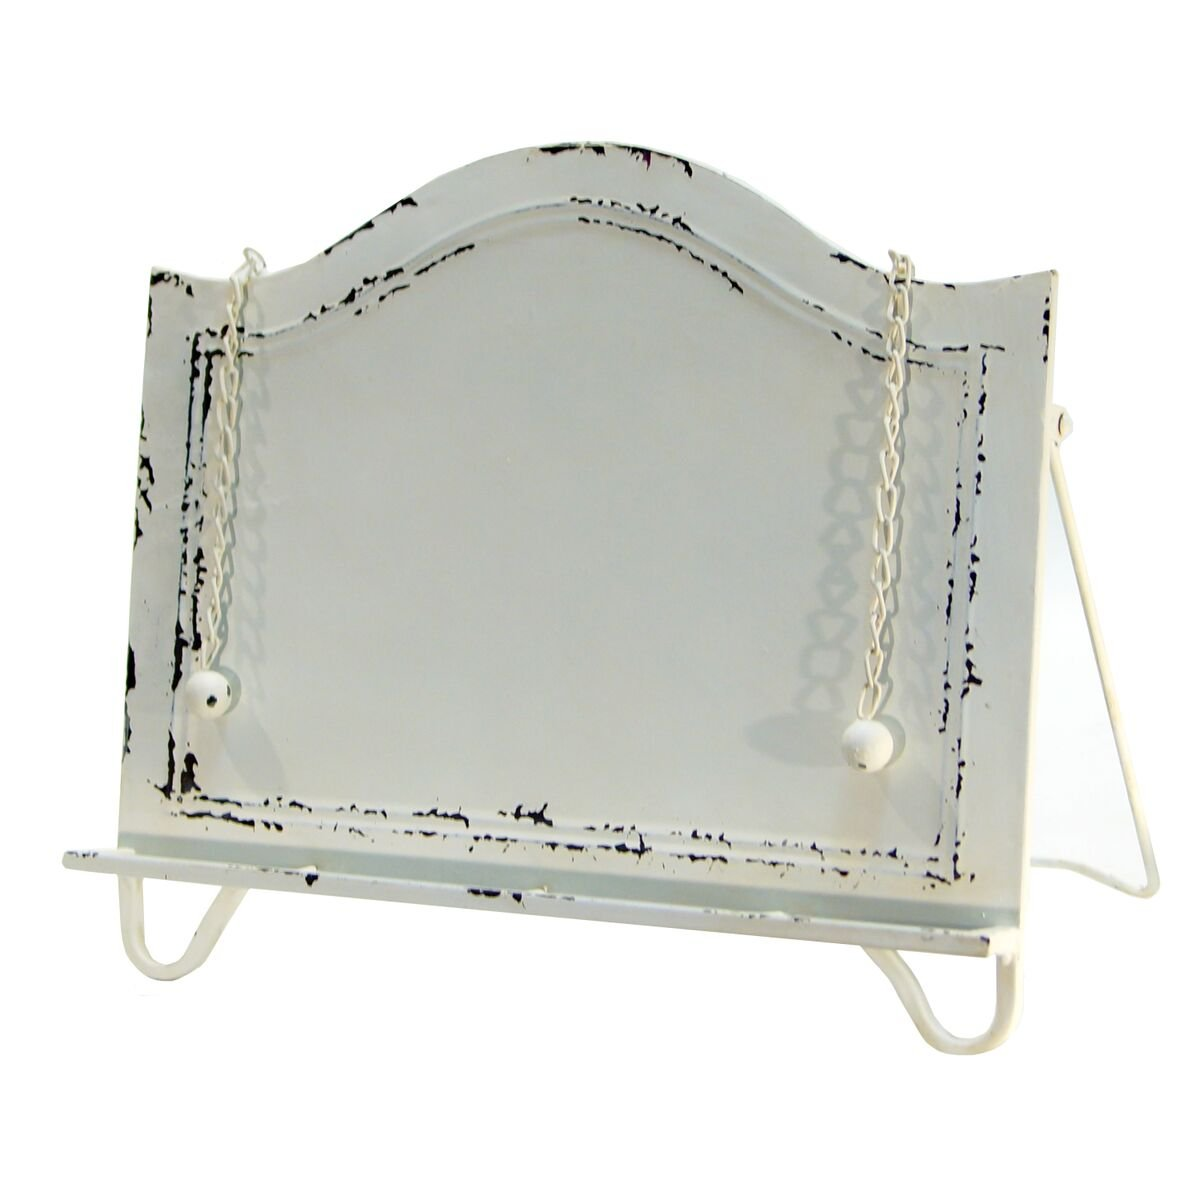 Antique White Distressed Metal Cookbook Holder with Weighted Chains, Cook Book Display Stand